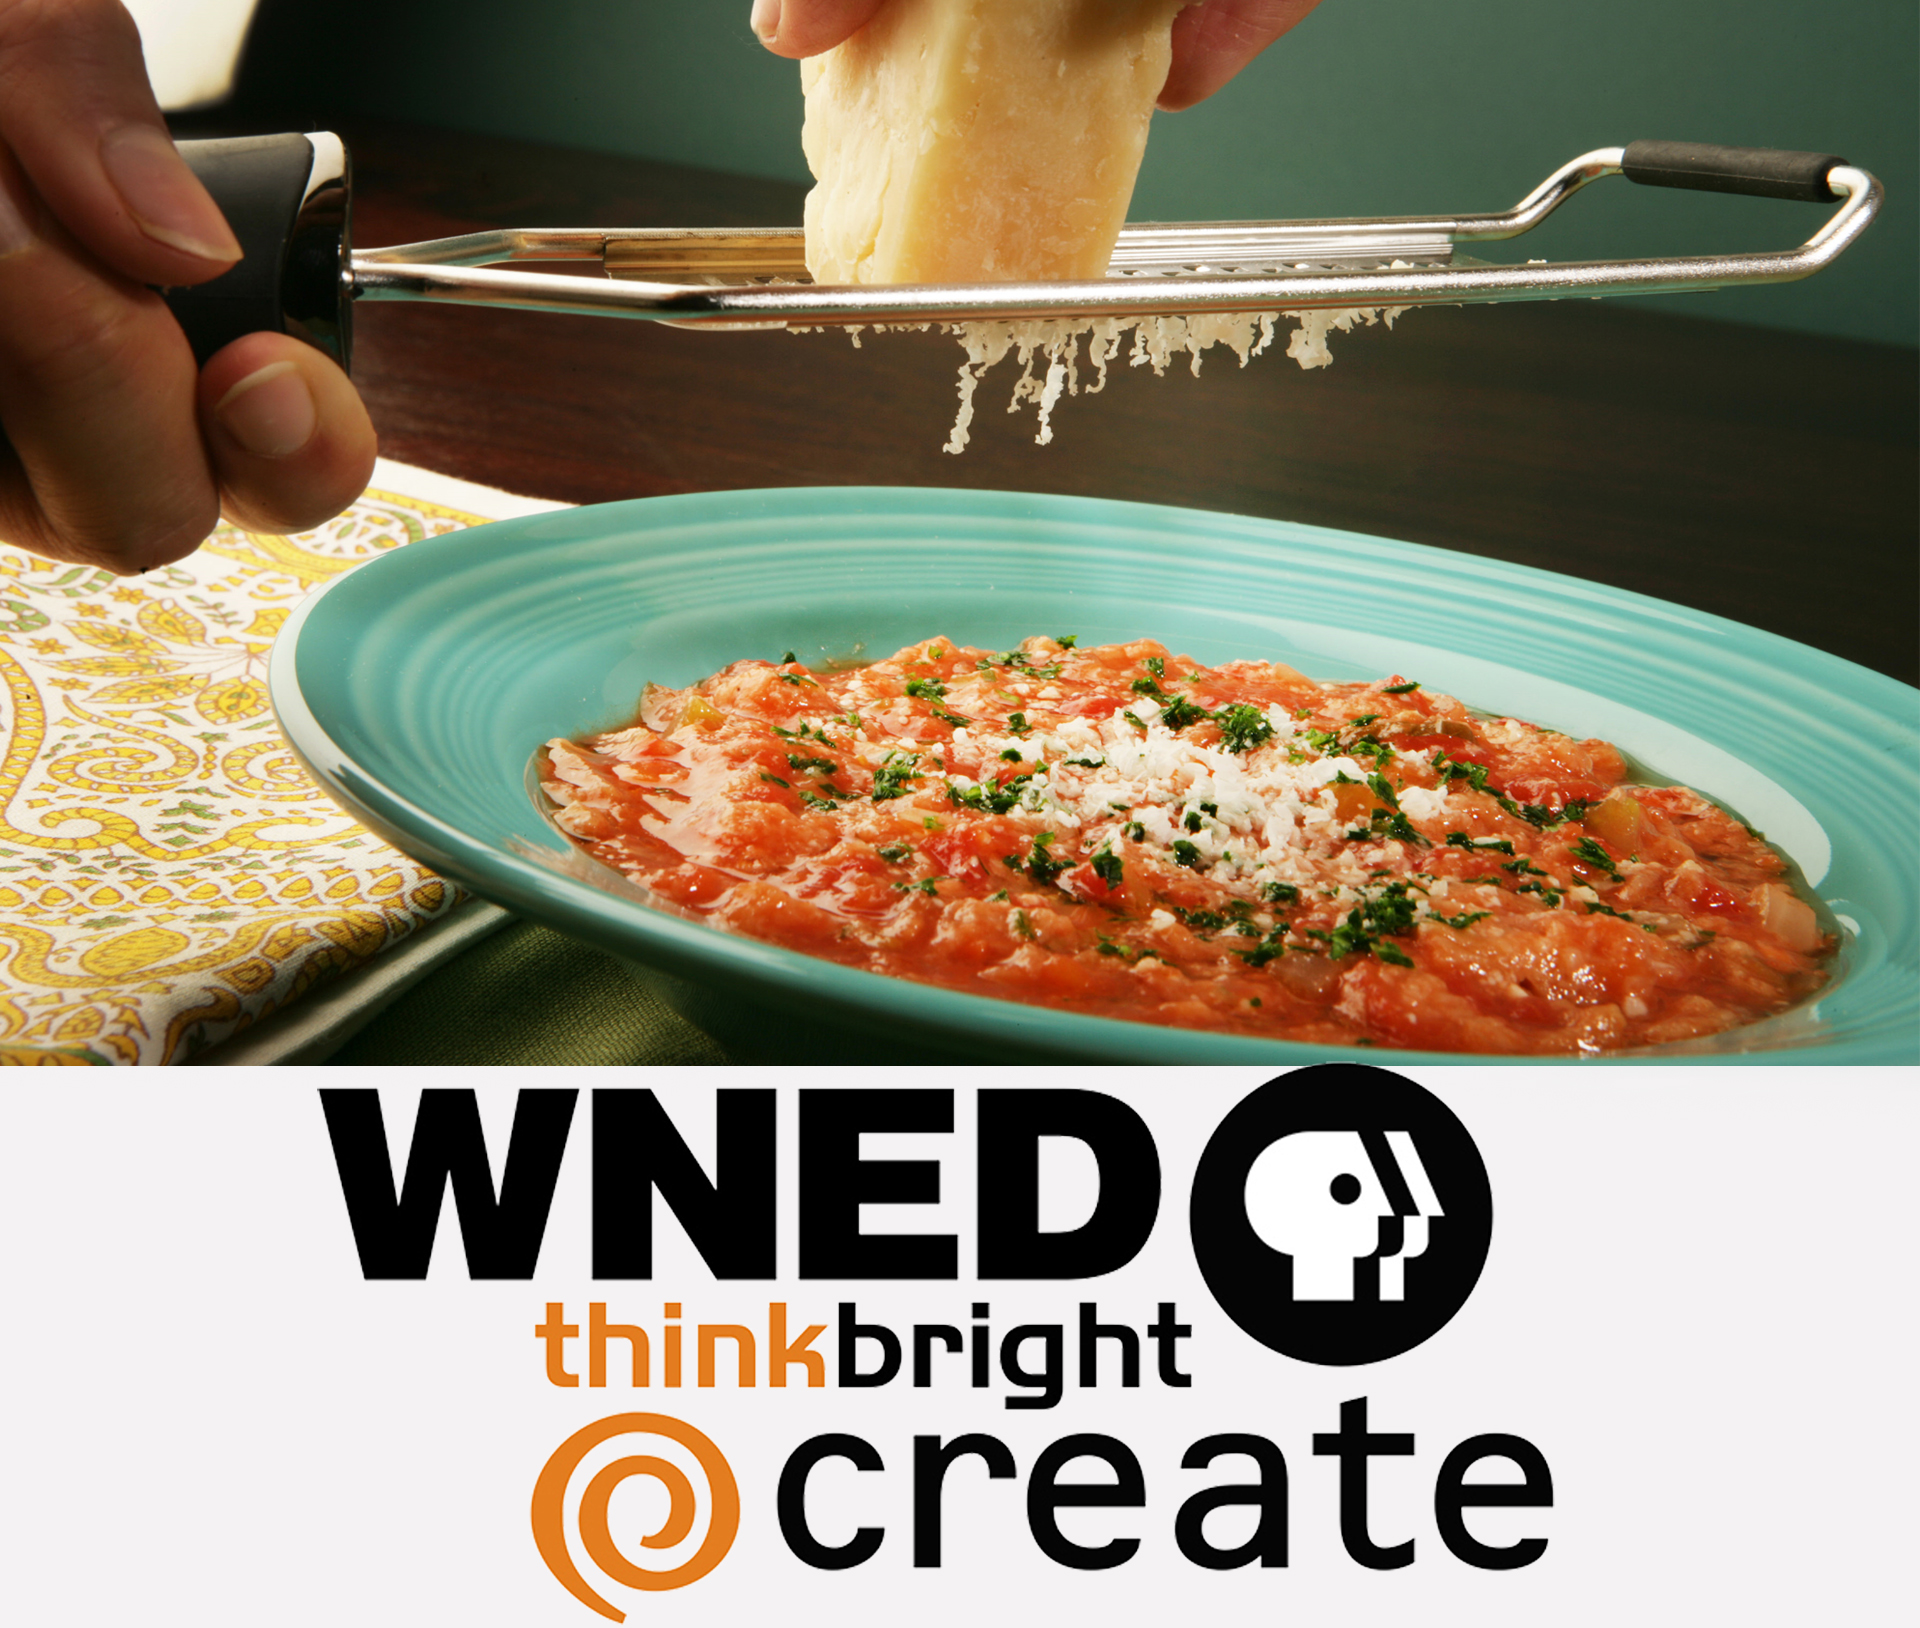 WNED thinkbright Create